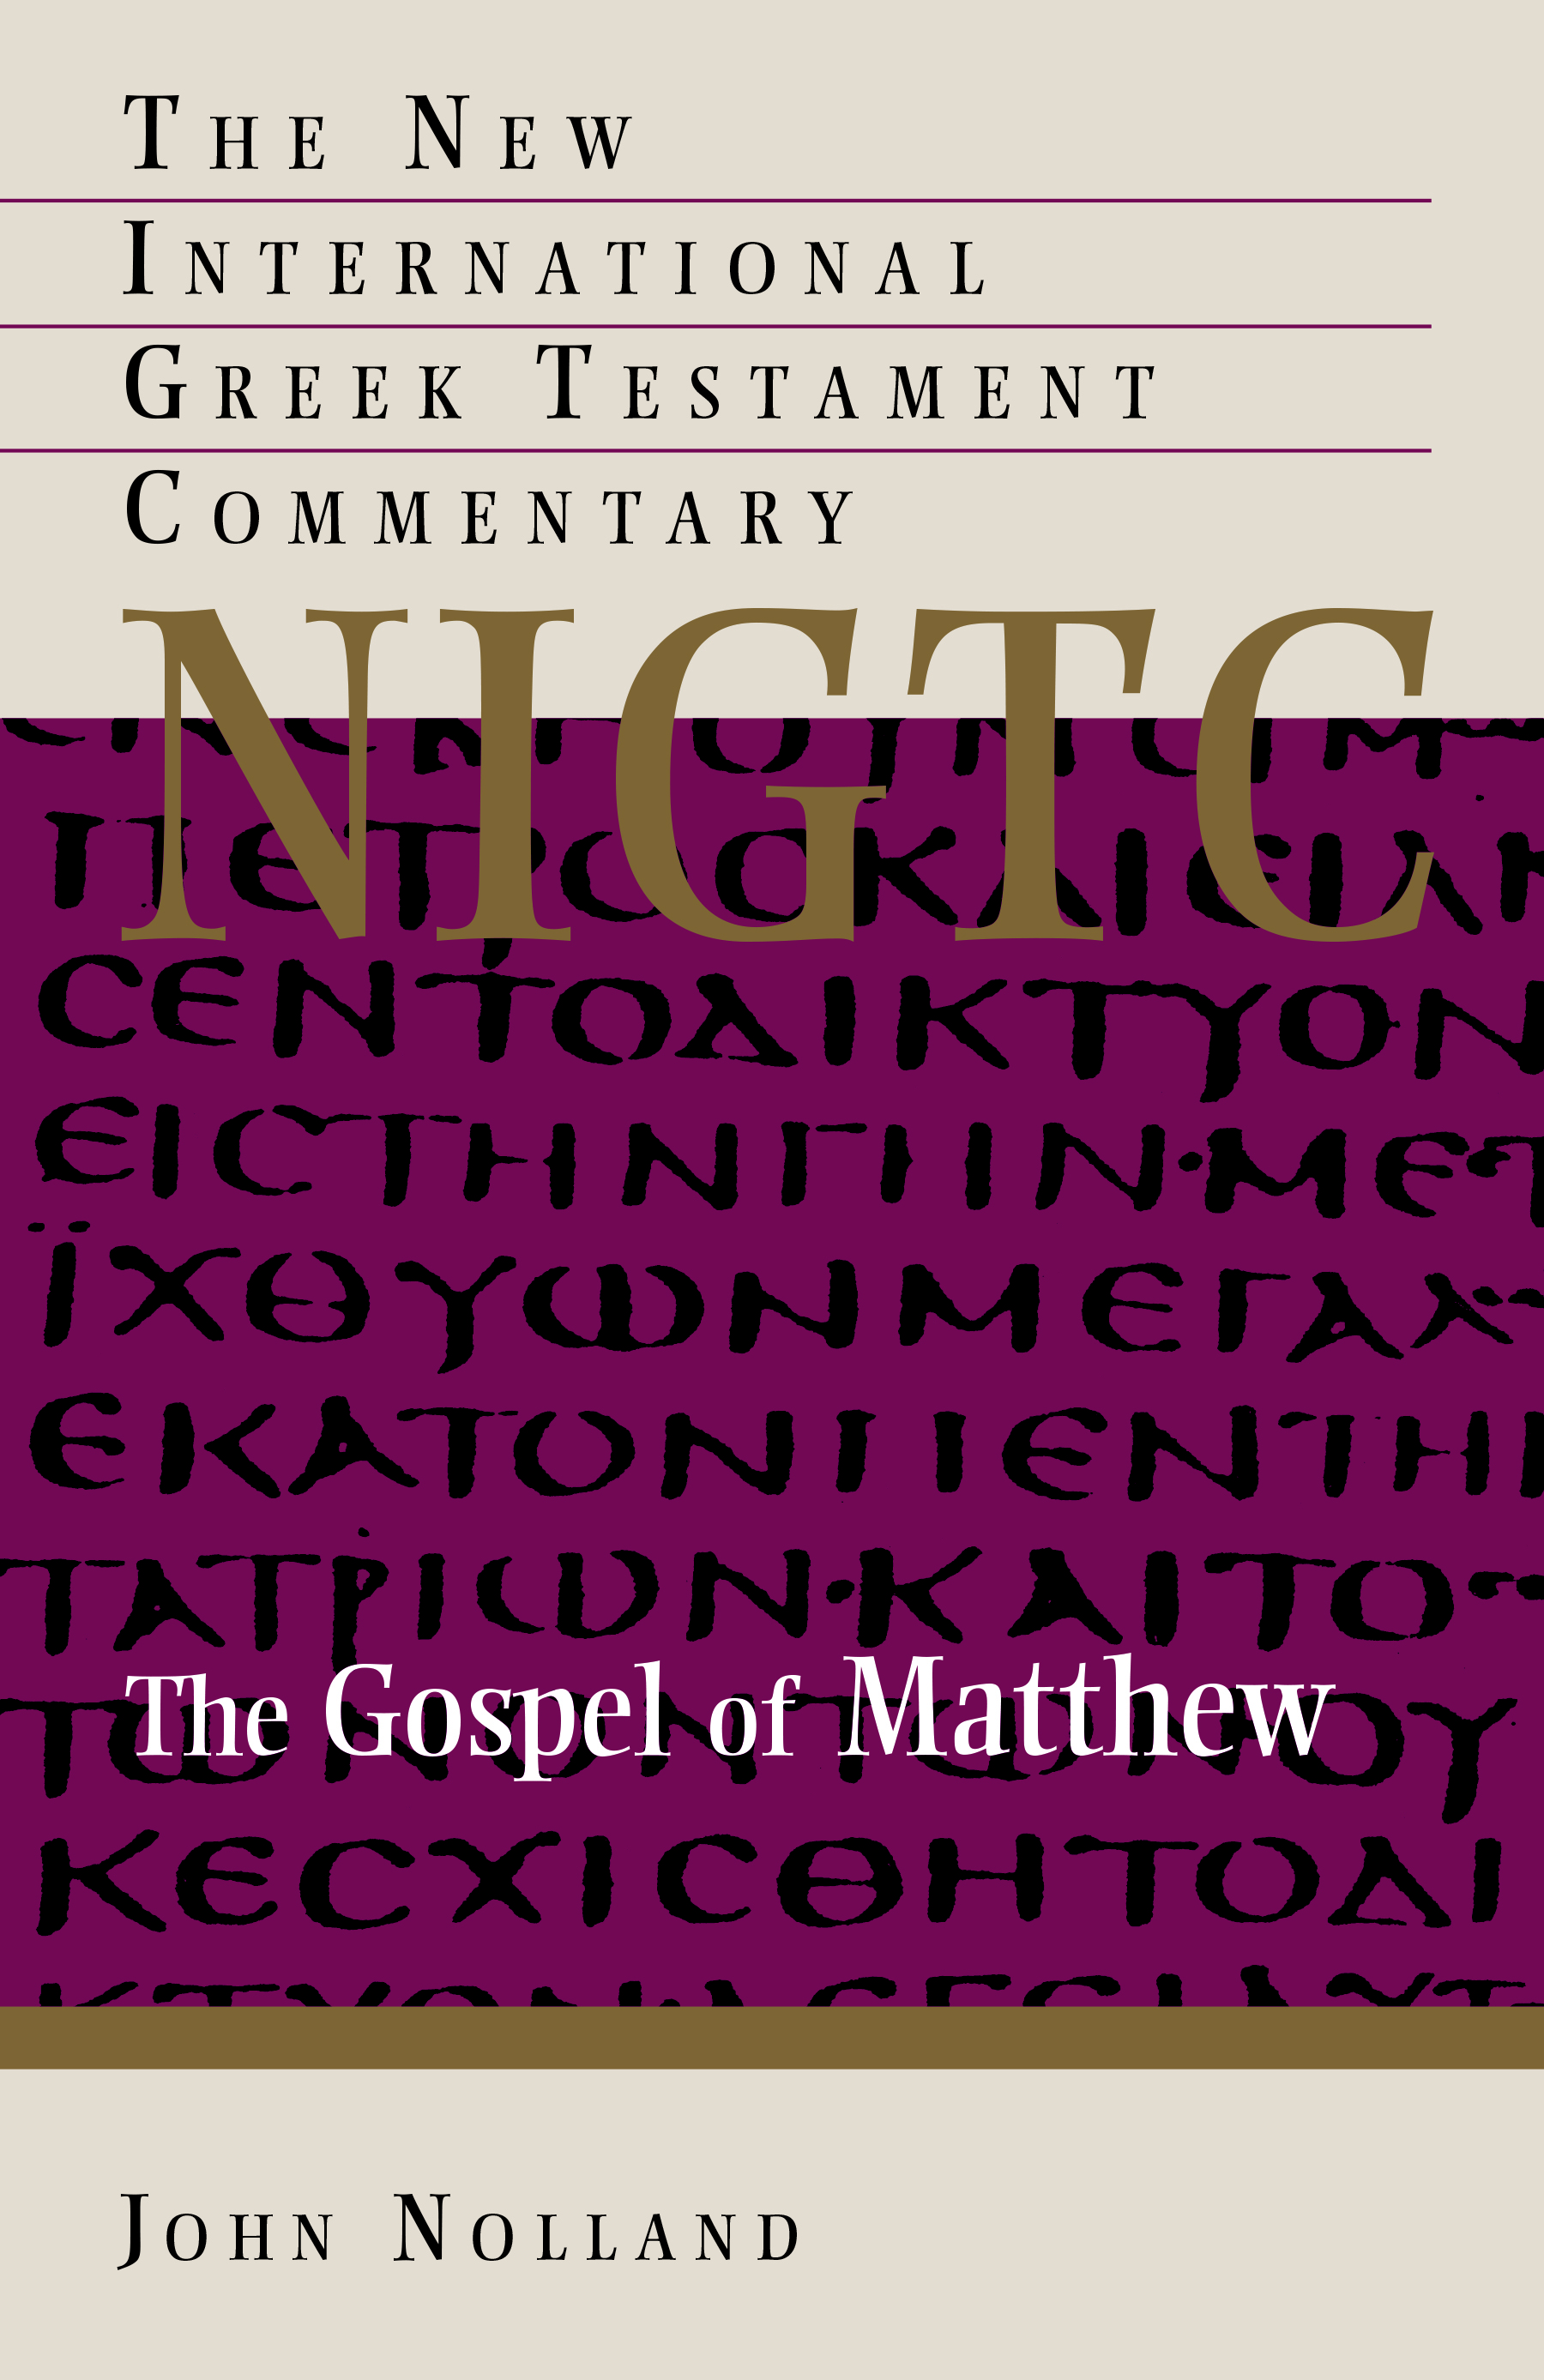 an analysis of the new american commentary matthew by blomberg The new american commentary: matthew by craig l blomberg the new american commentary: matthew author: craig l blomberg publisher: broadman press about craig blomberg craig l blomberg is the distinguished professor of new testament at denver seminary, acquiring his phd from the.